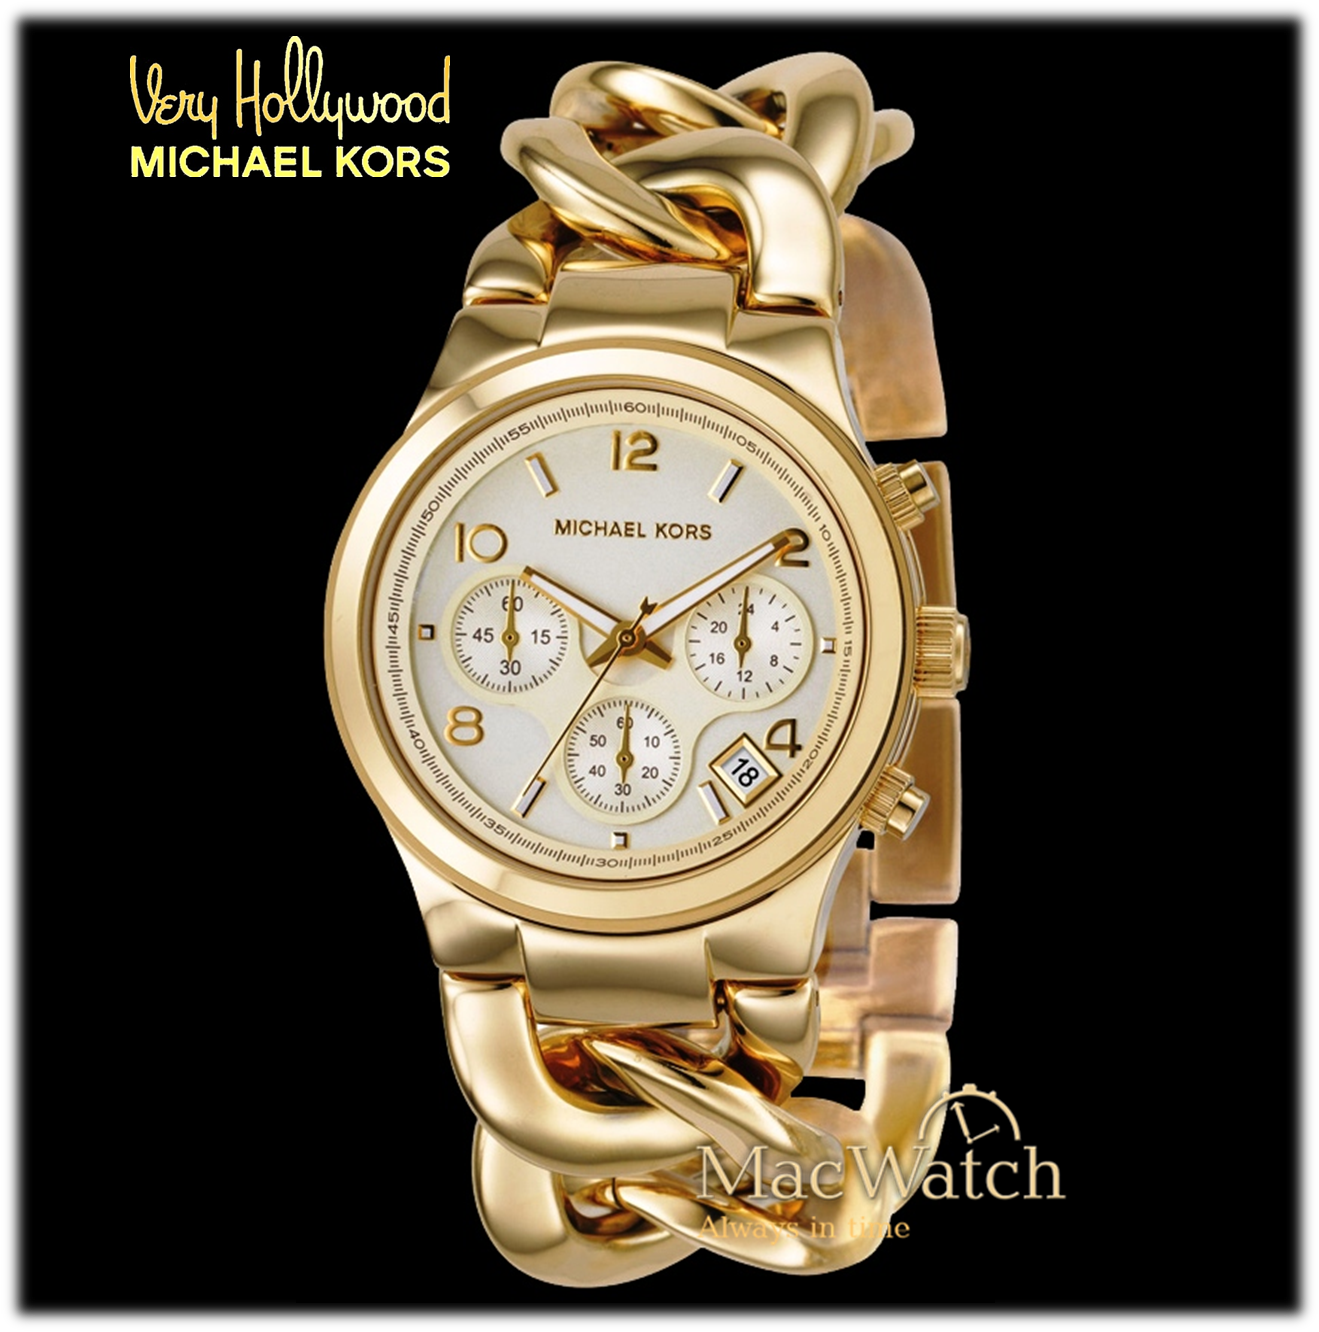 michael kors damen uhr mk3131 gold macwatch. Black Bedroom Furniture Sets. Home Design Ideas